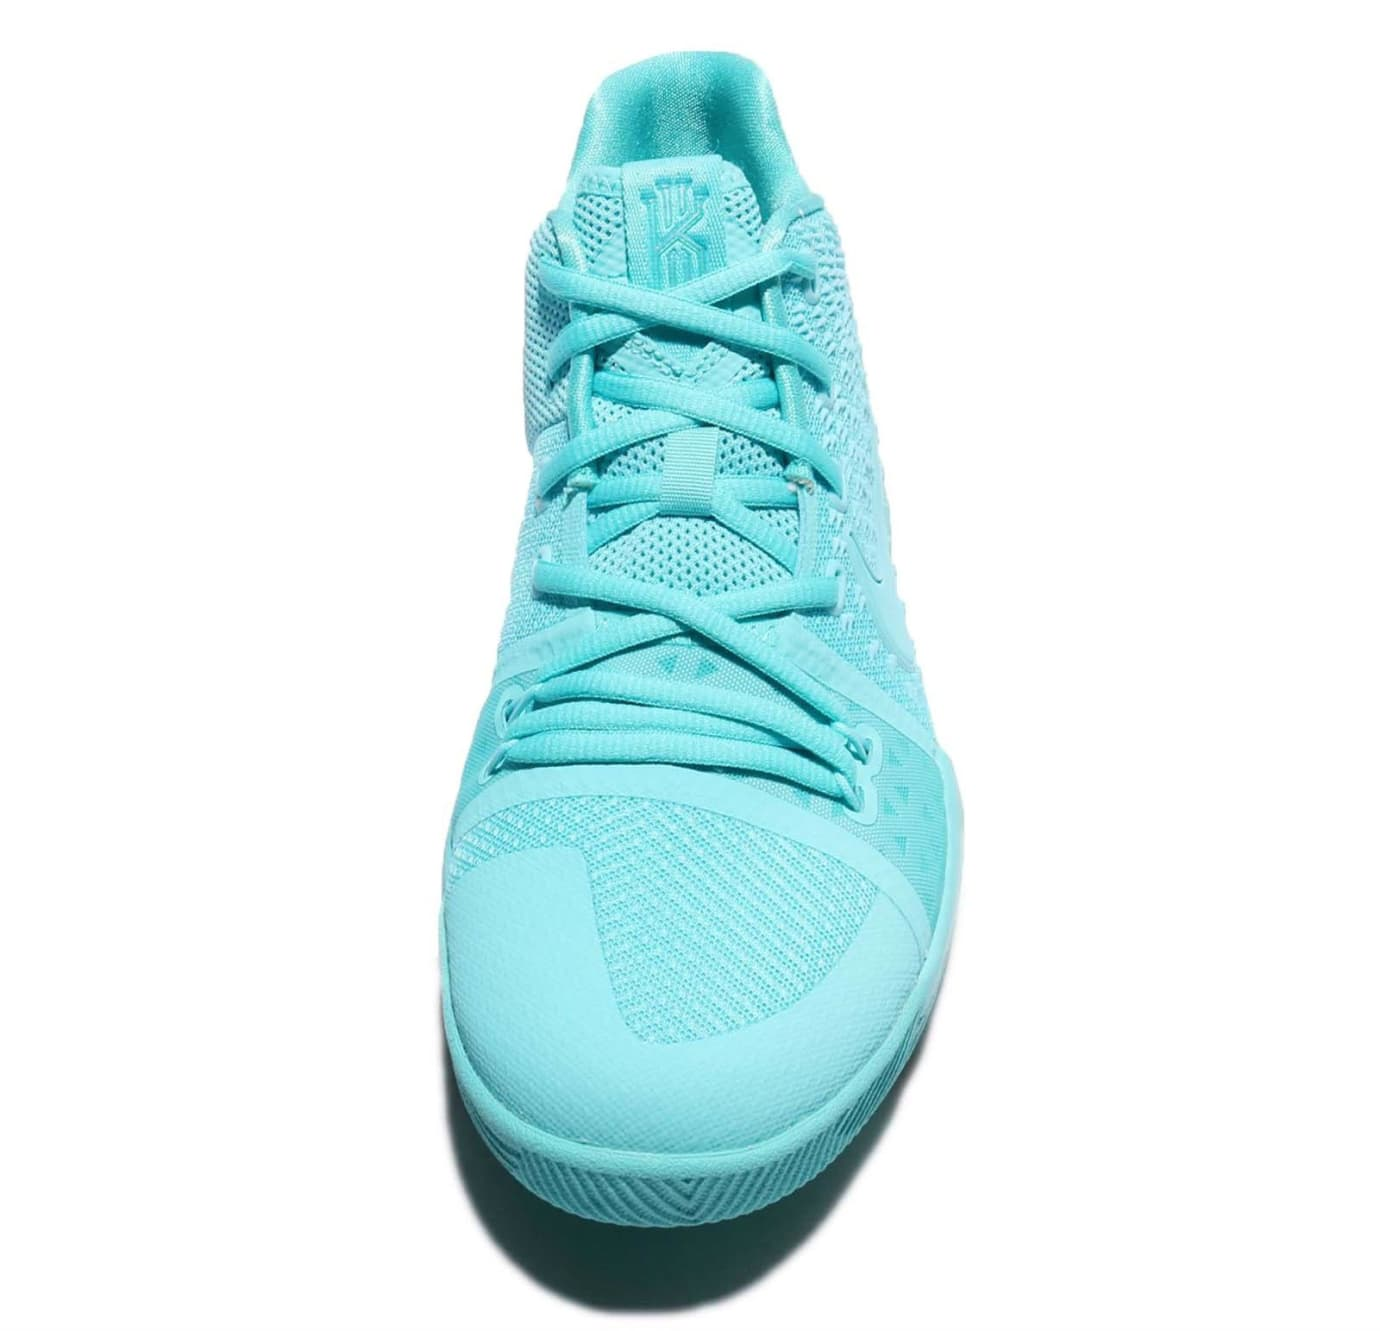 Nike Kyrie 3 GS Aqua Release Date Front 859466-401